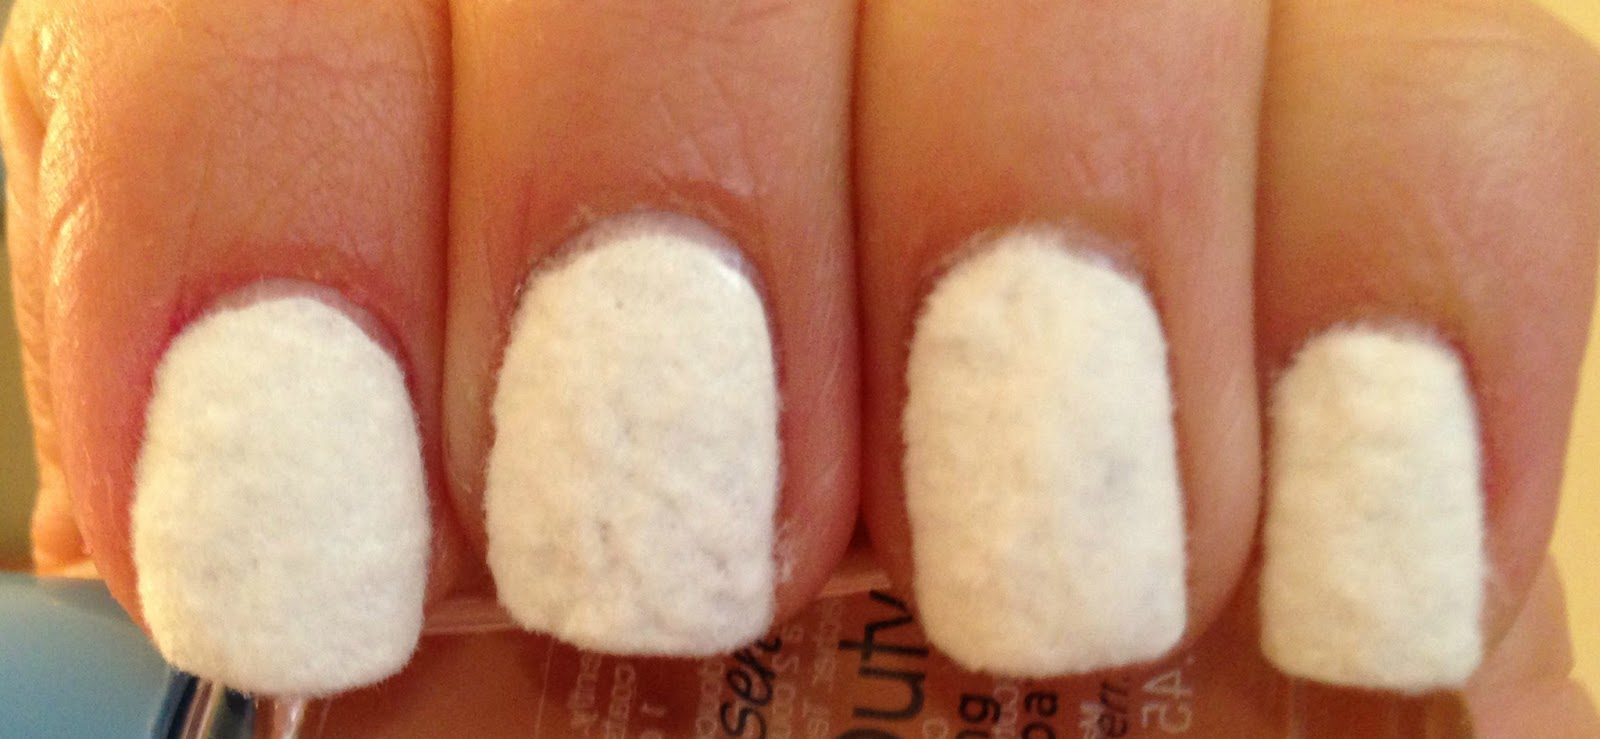 how to make flocking powder for nails at home